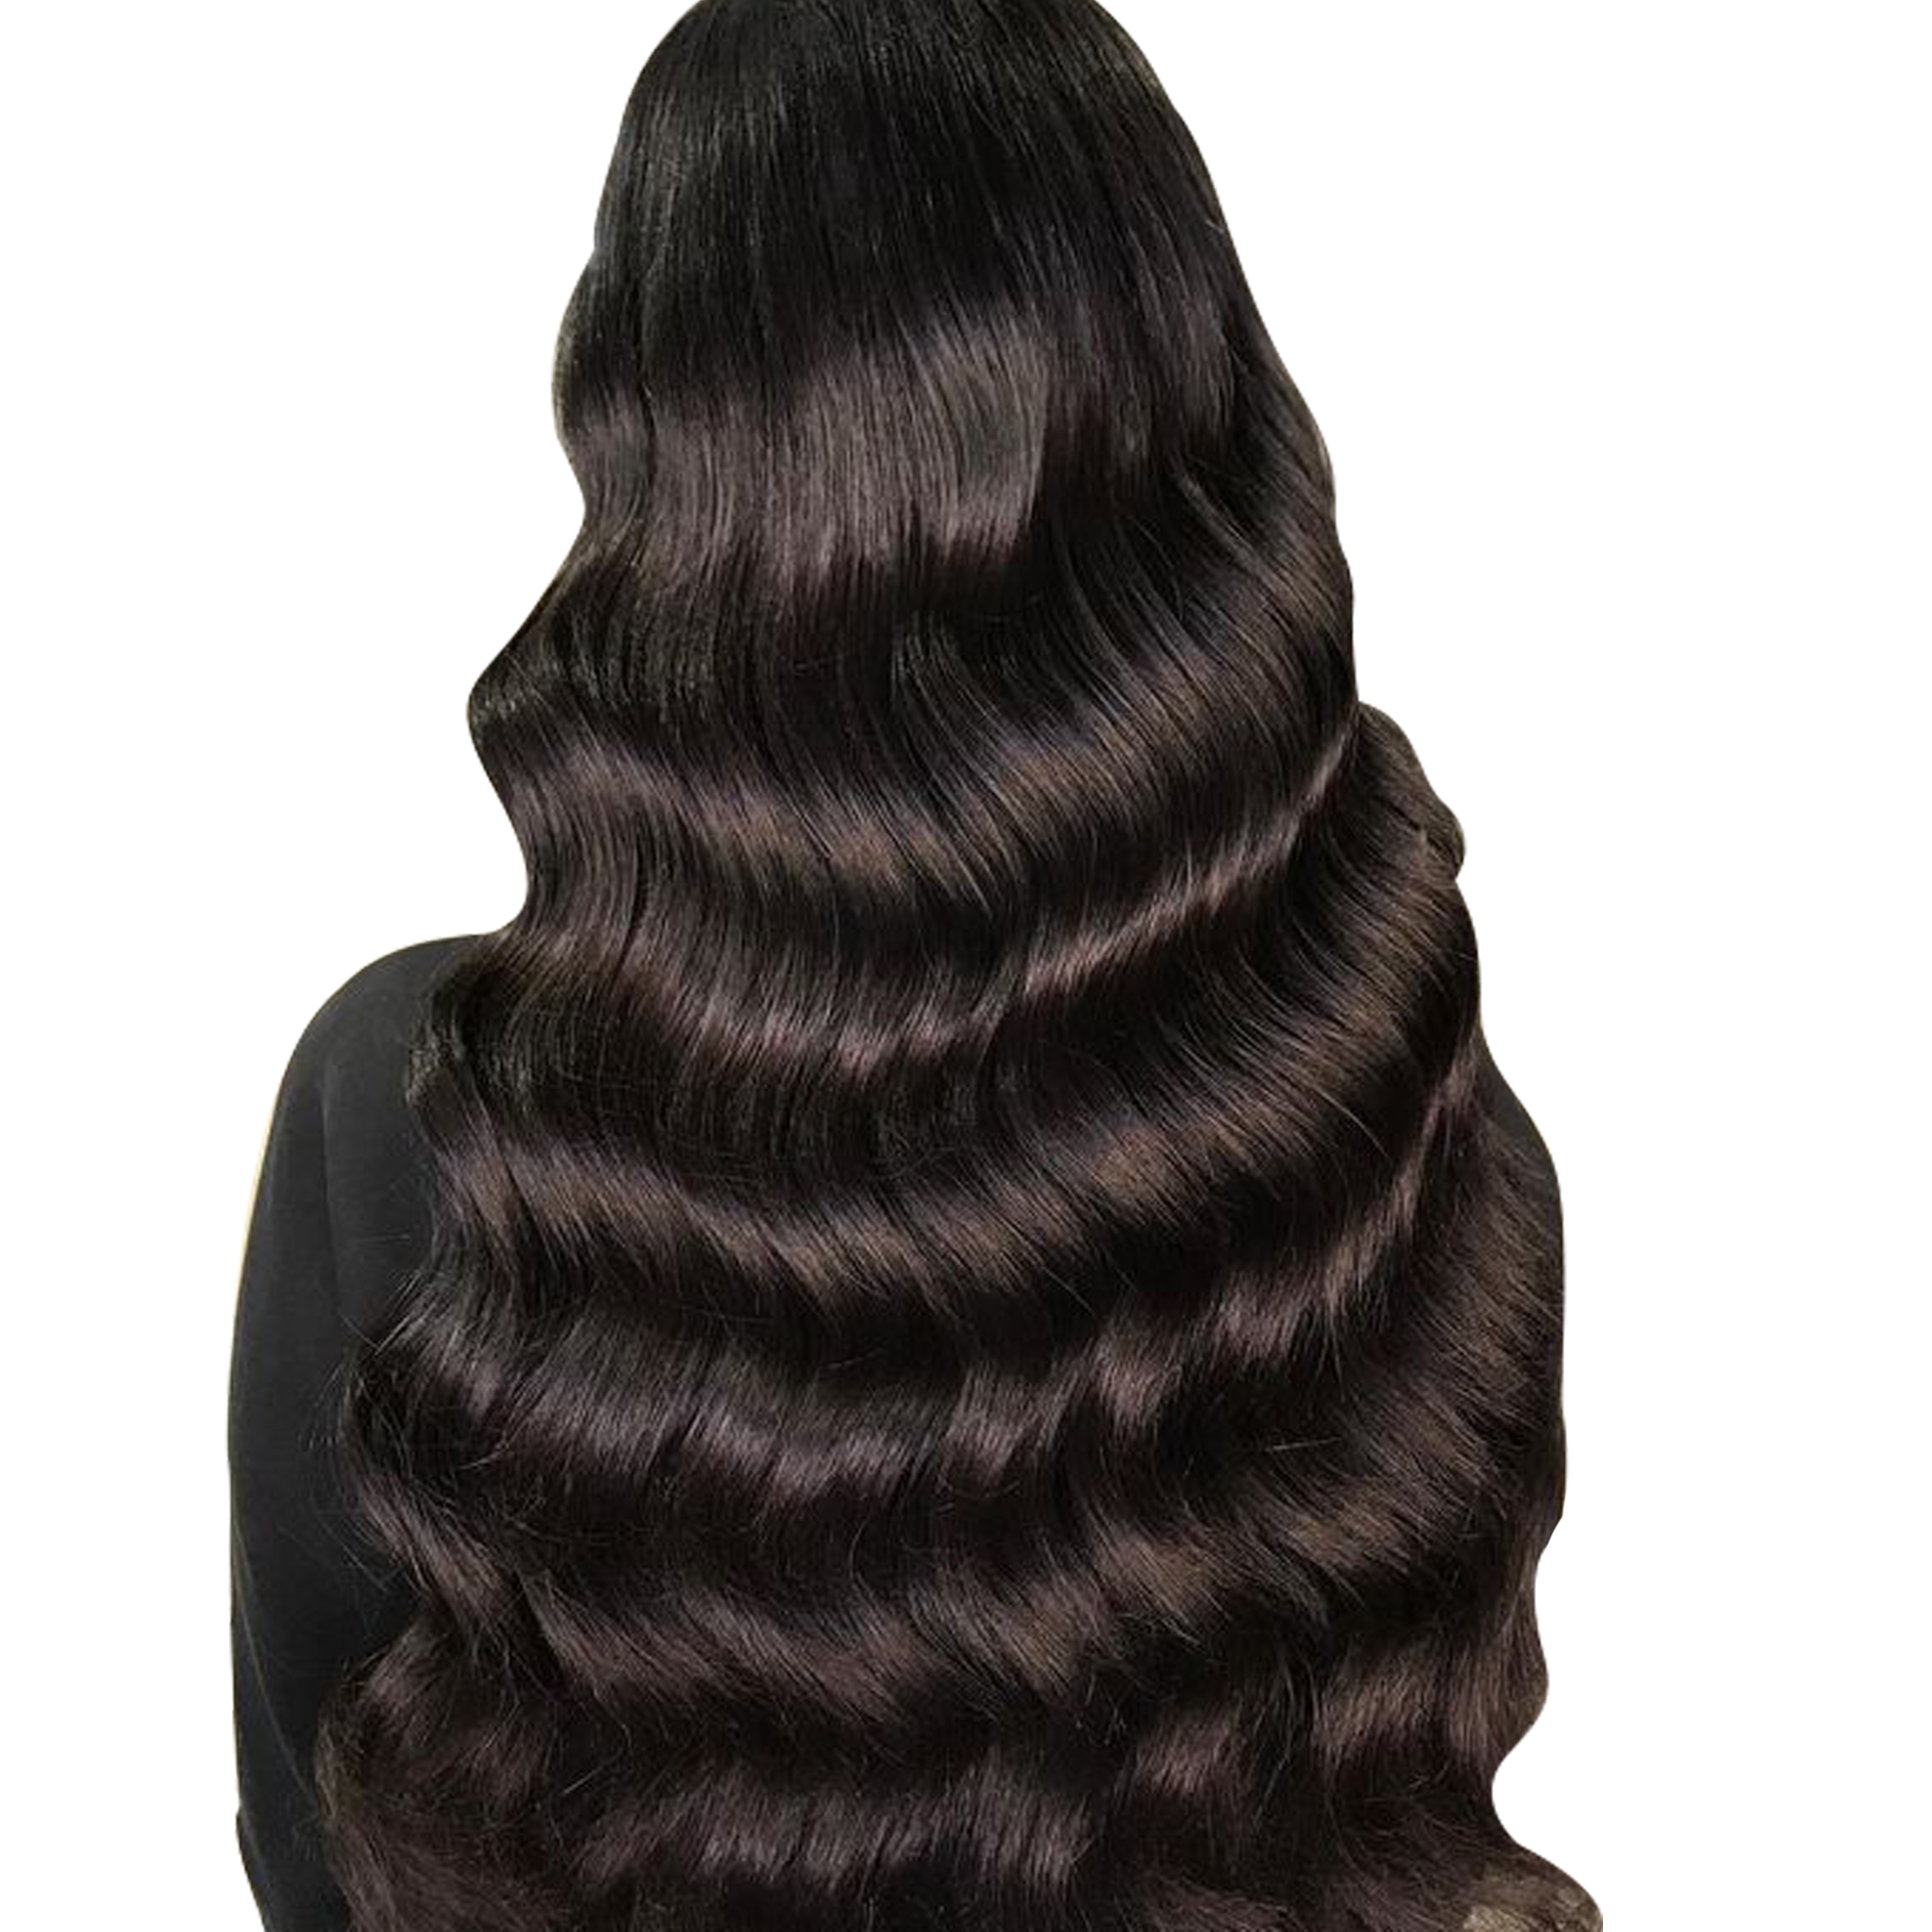 BBOSS Raw Chicago cheap wholesale brazilian hair vendor,loose wave annabelle hair,raw 10A grade mink brazilian hair virgin human